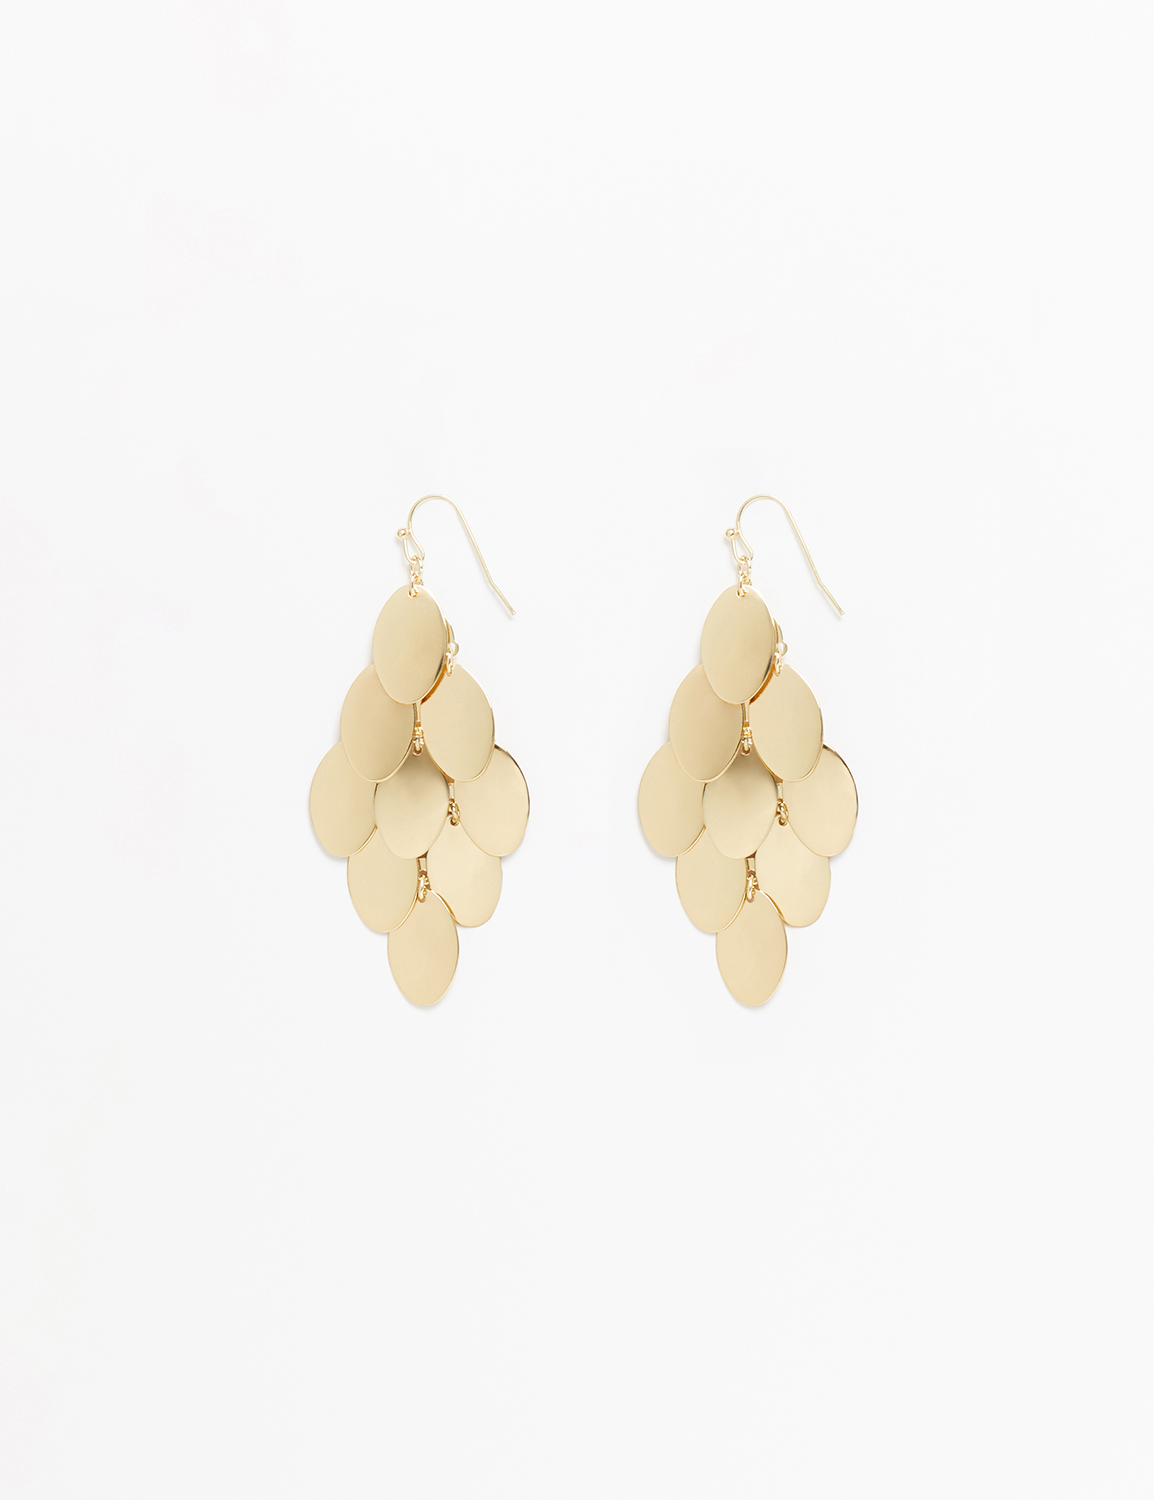 retouched set of gold disk chandelier earrings on white background